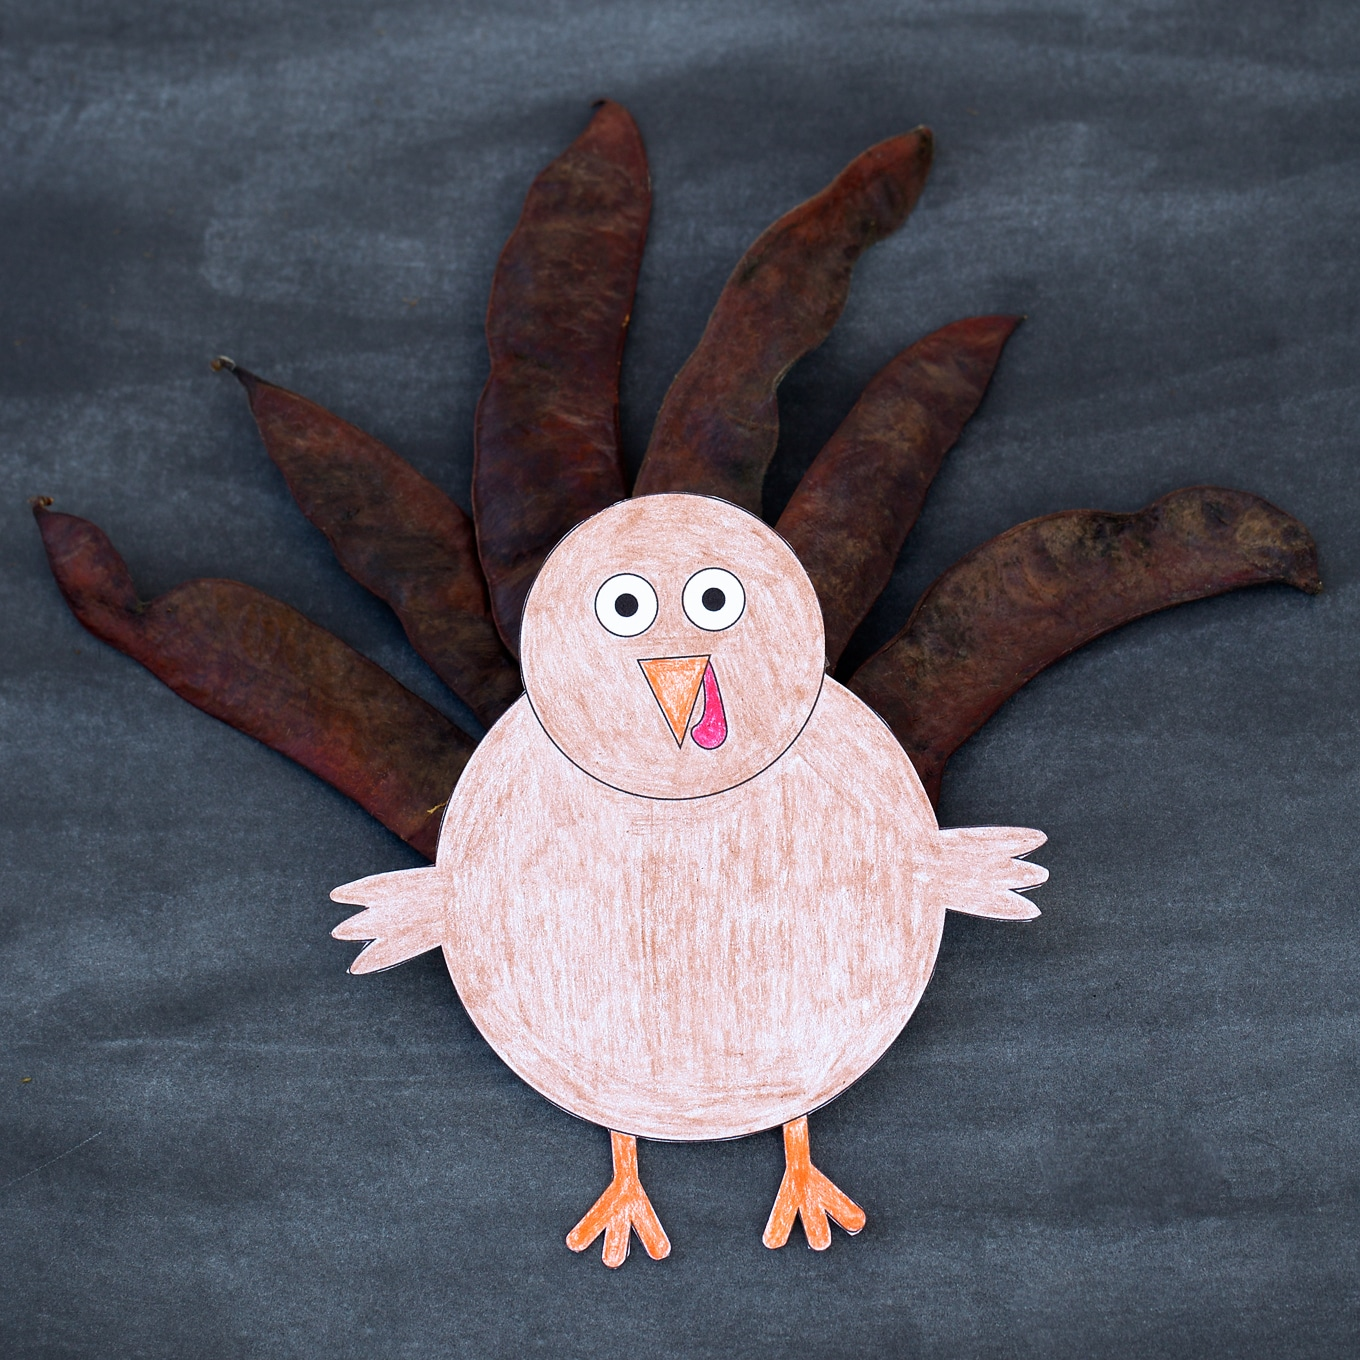 Kids love this creative Design Your Own Thanksgiving Turkey craft. This easy craft includes a free printable template, making it perfect for home or school.